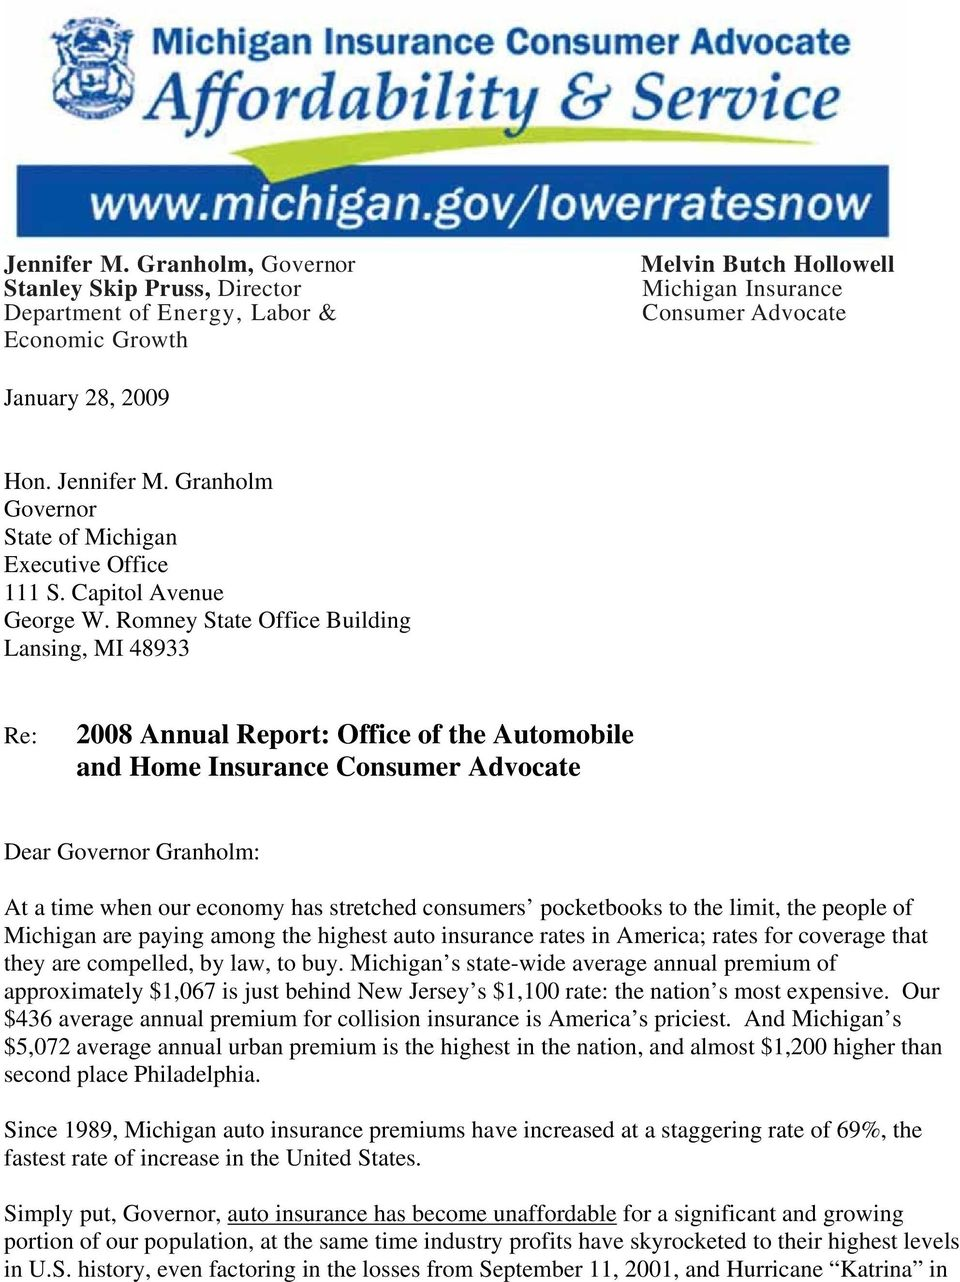 Romney State Office Building Lansing, MI 48933 Re: 2008 Annual Report: Office of the Automobile and Home Insurance Consumer Advocate Dear Governor Granholm: At a time when our economy has stretched